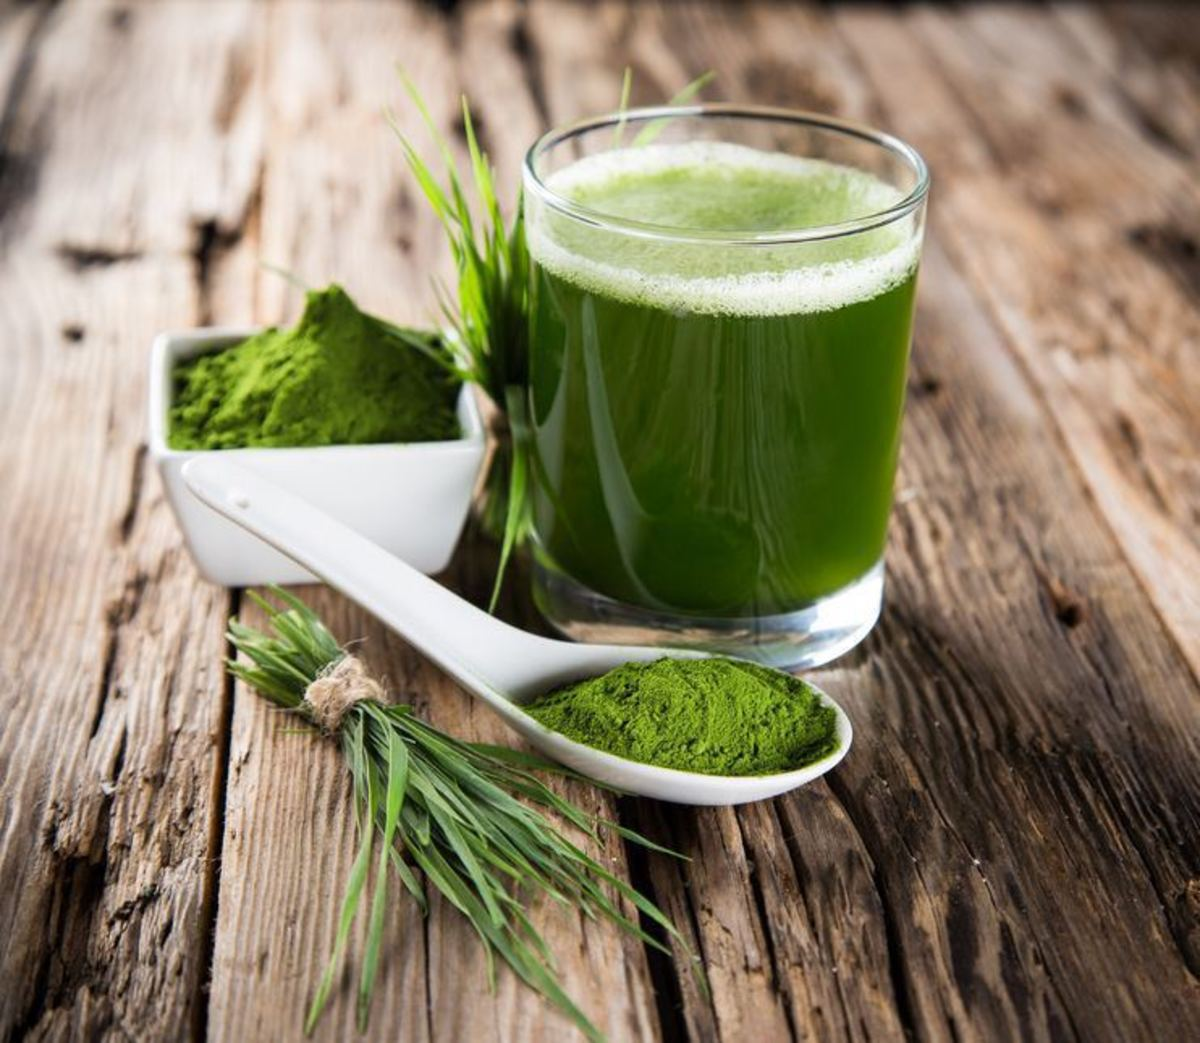 Reasons To Drink a Daily Wheatgrass Shot